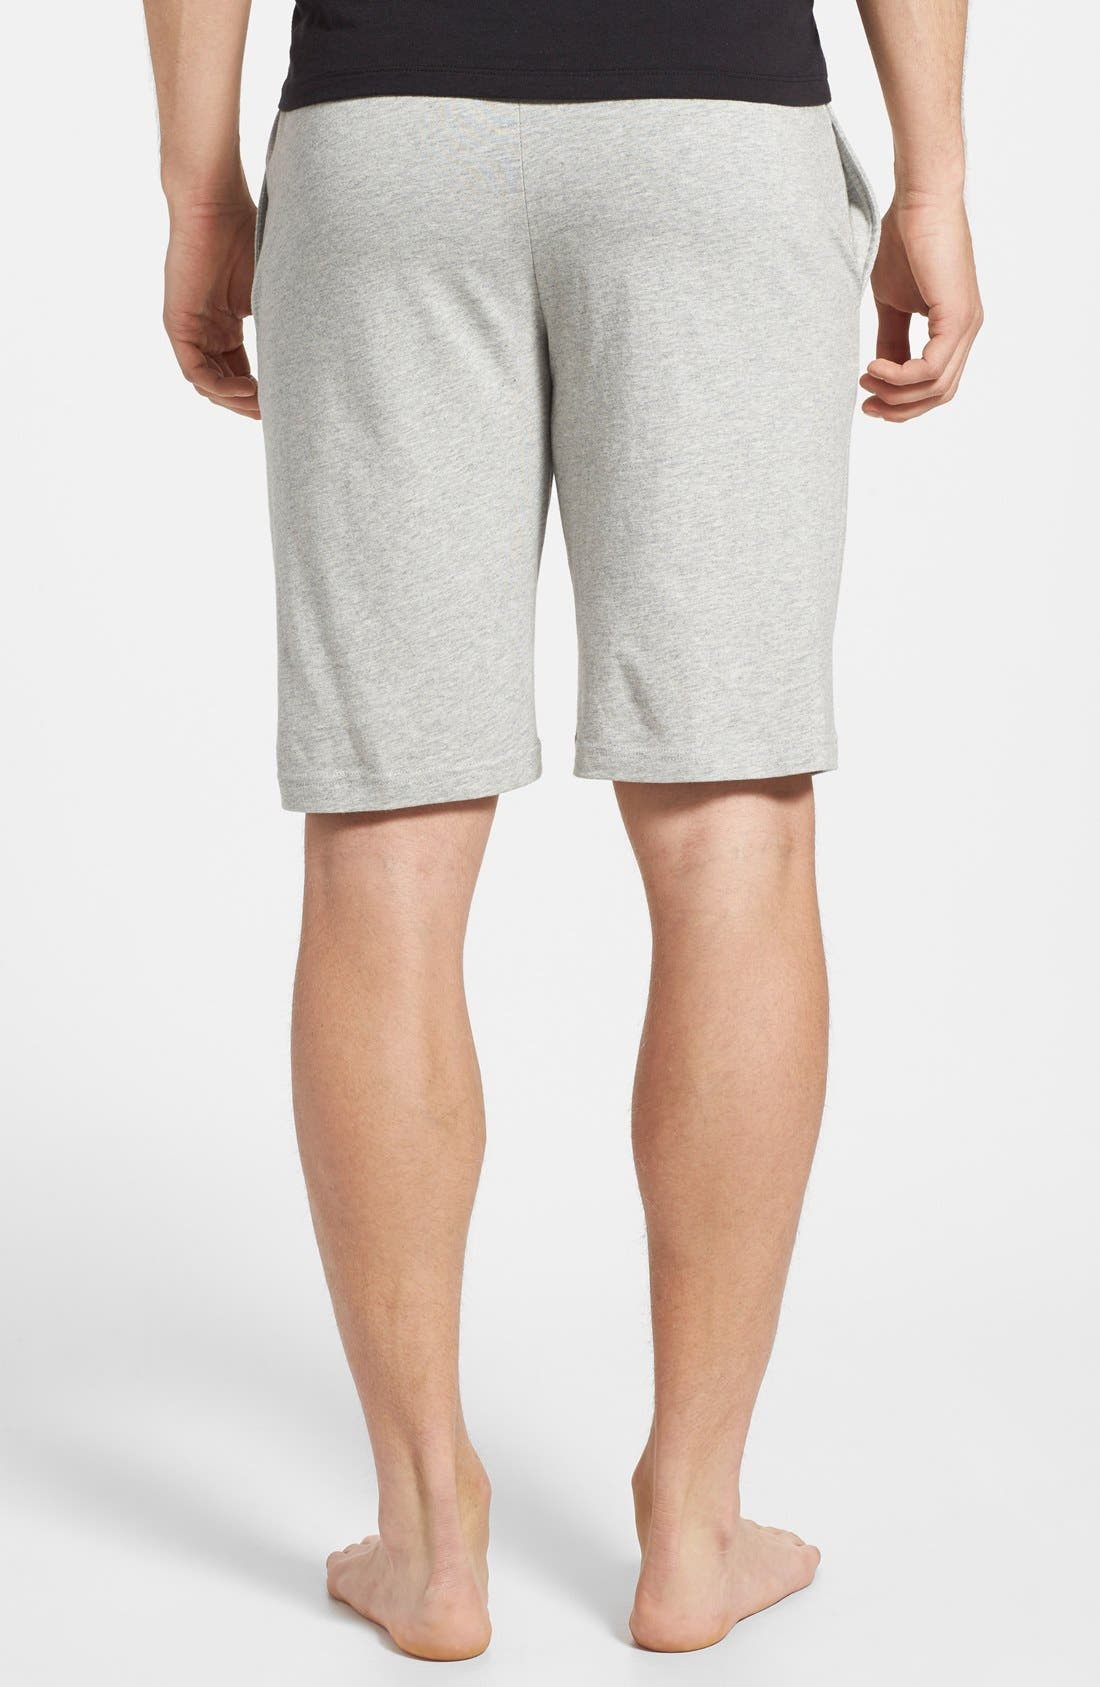 POLO RALPH LAUREN, Sleep Shorts, Alternate thumbnail 2, color, ANDOVER HEATHER